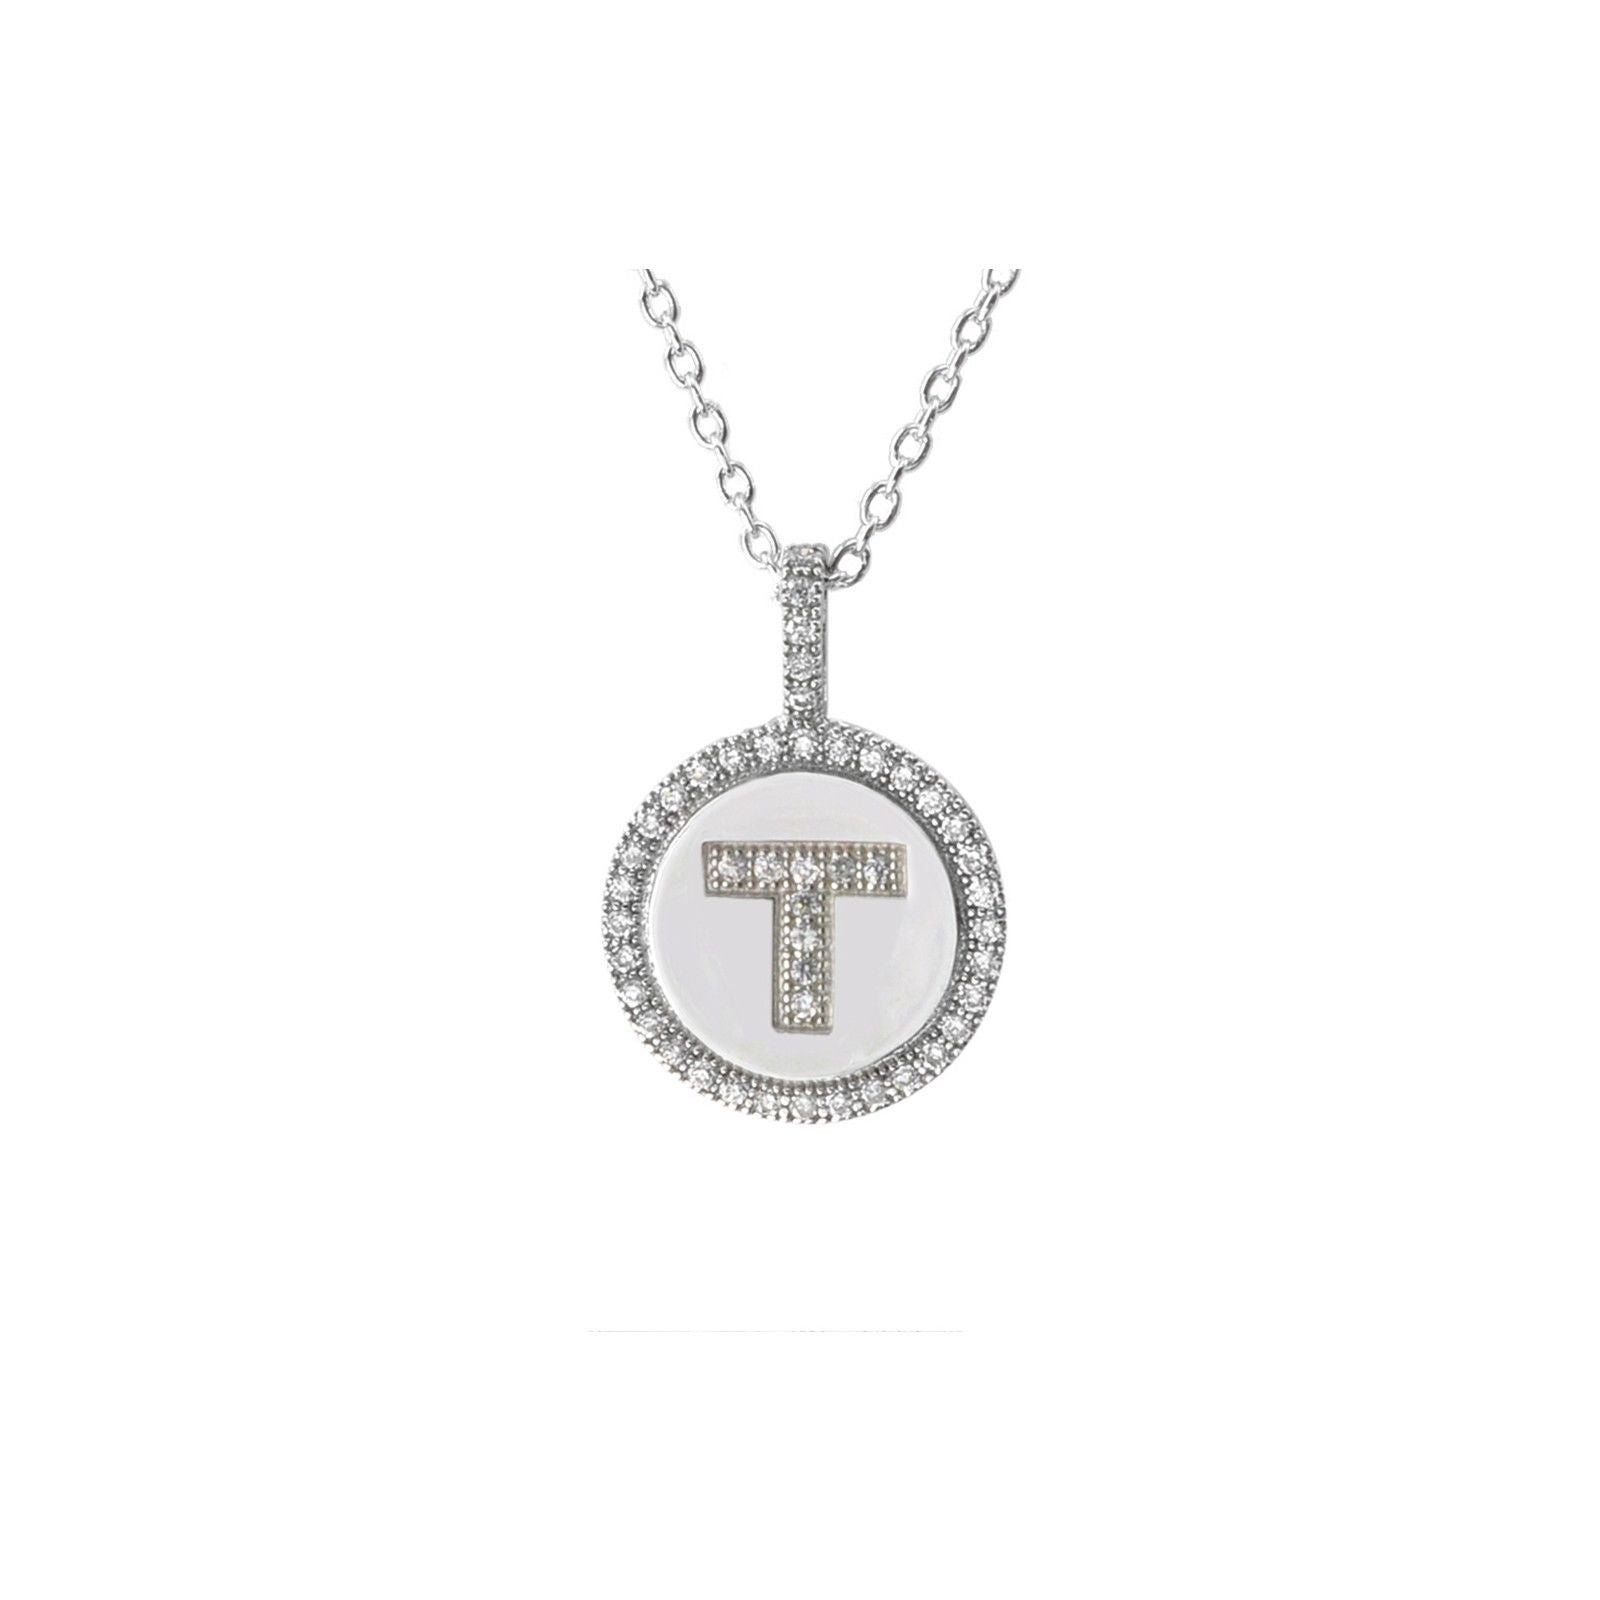 Sterling silver initial necklace letter t necklace jewelryland initial necklace letter t pendant sterling silver micropave cubic zirconia aloadofball Choice Image